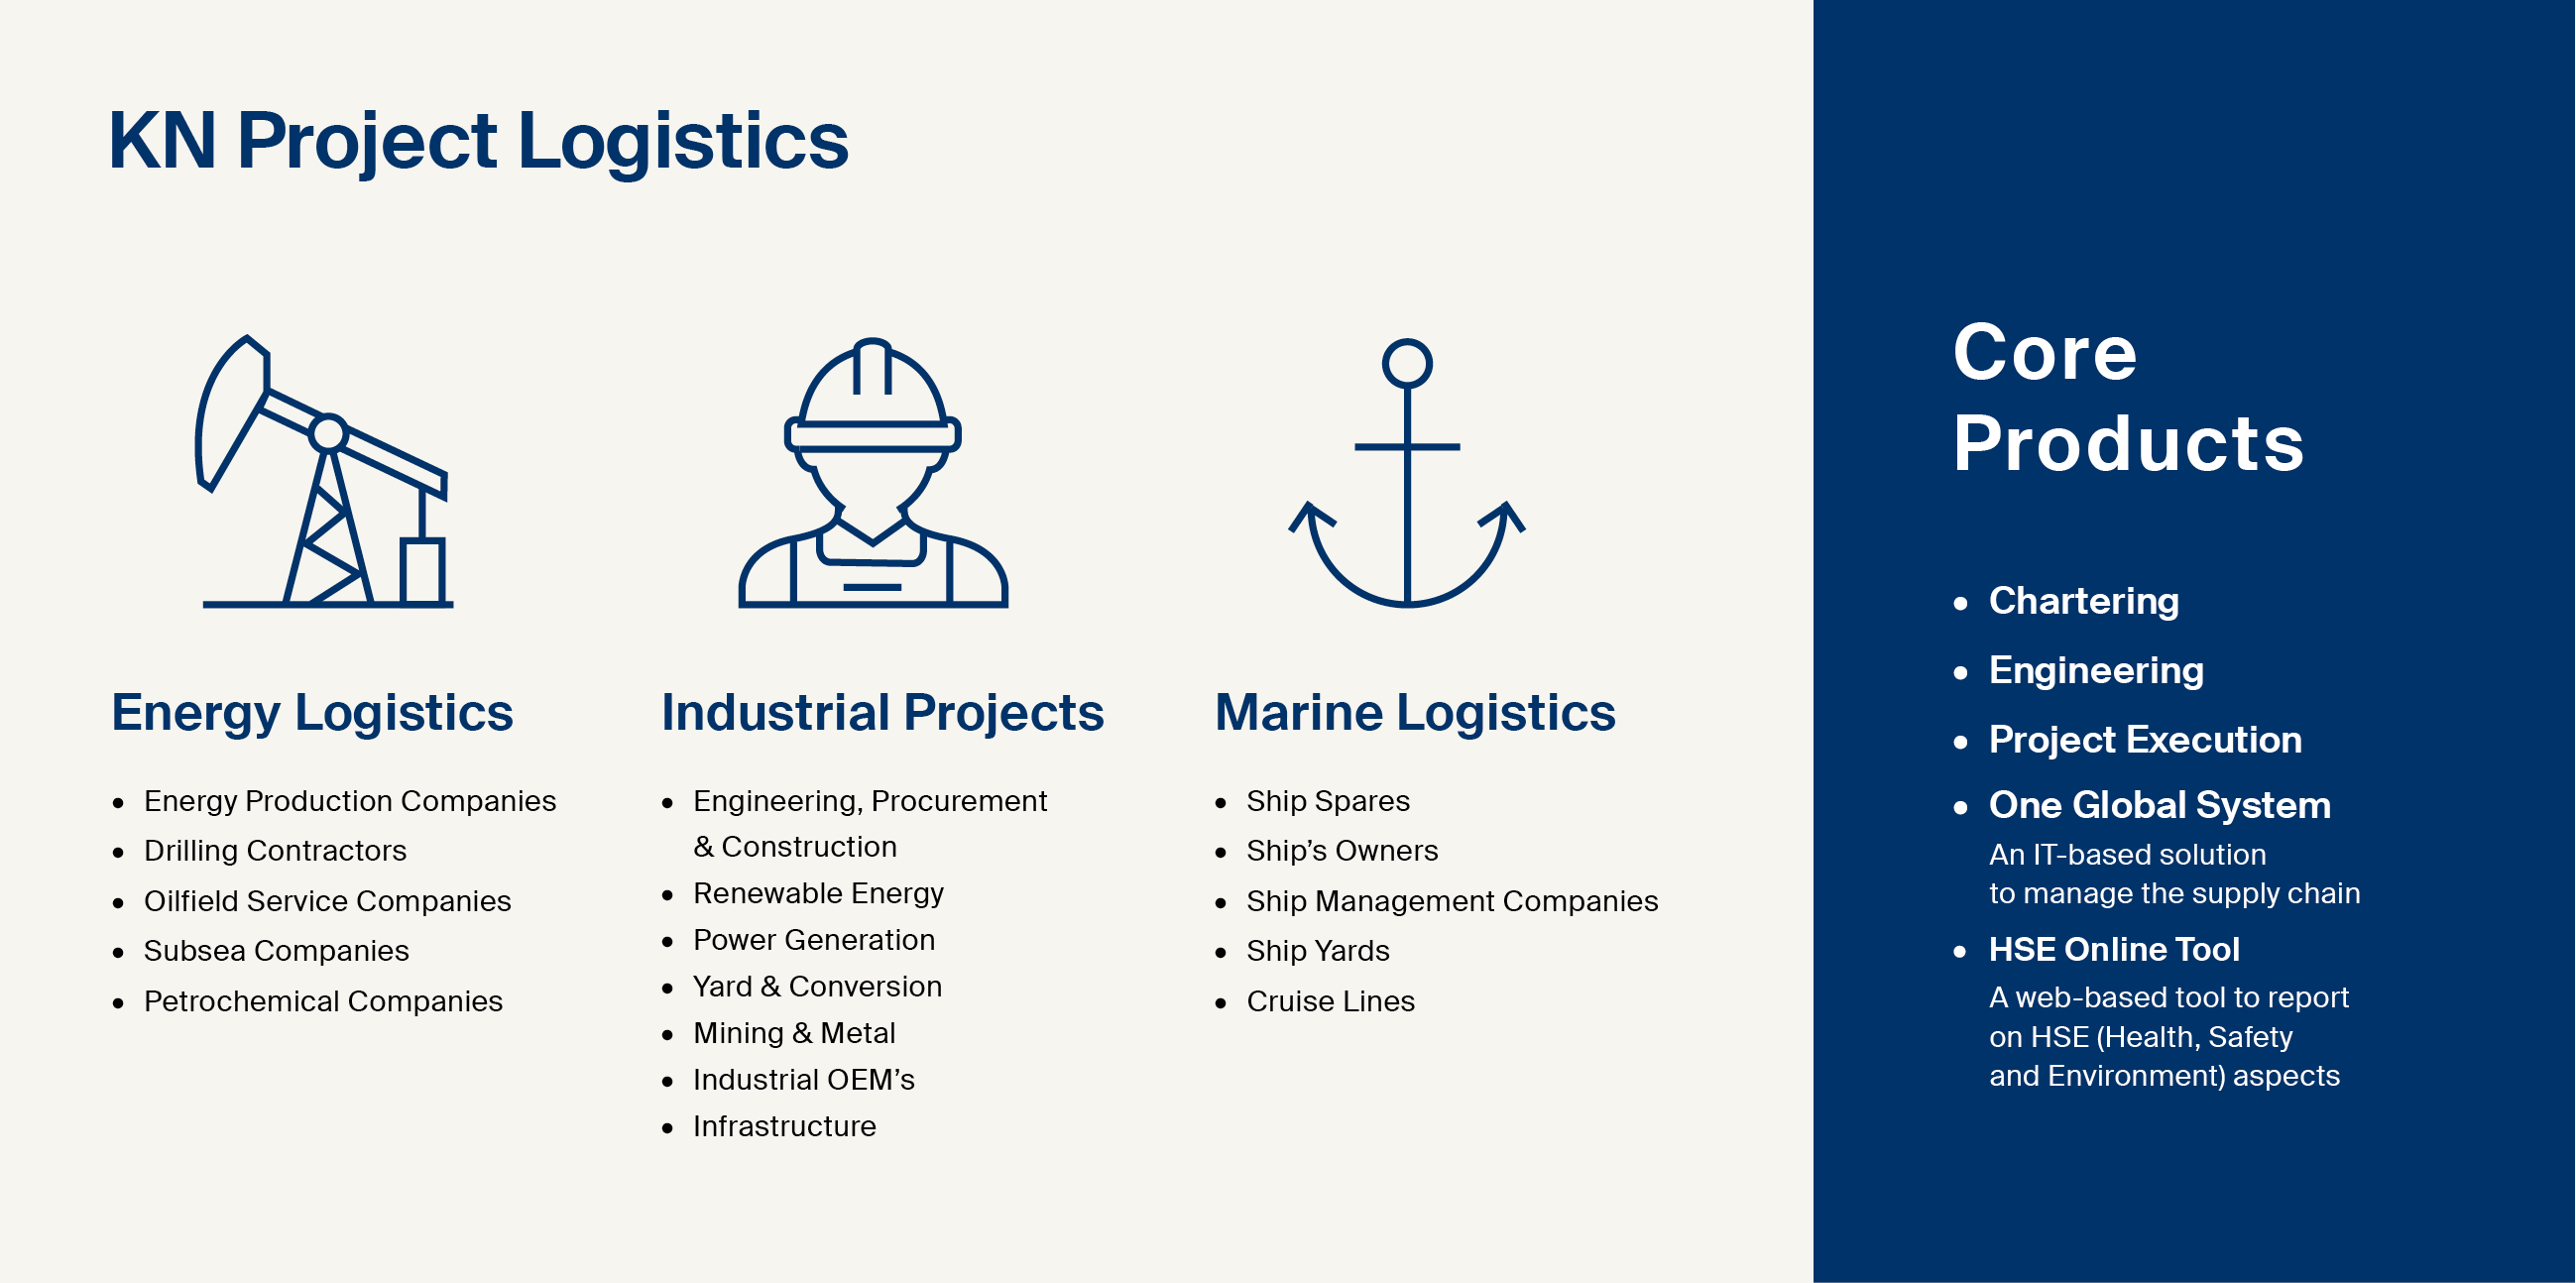 Project Logistics, Energy Logistics, Industrial Projects, Marine Logistics